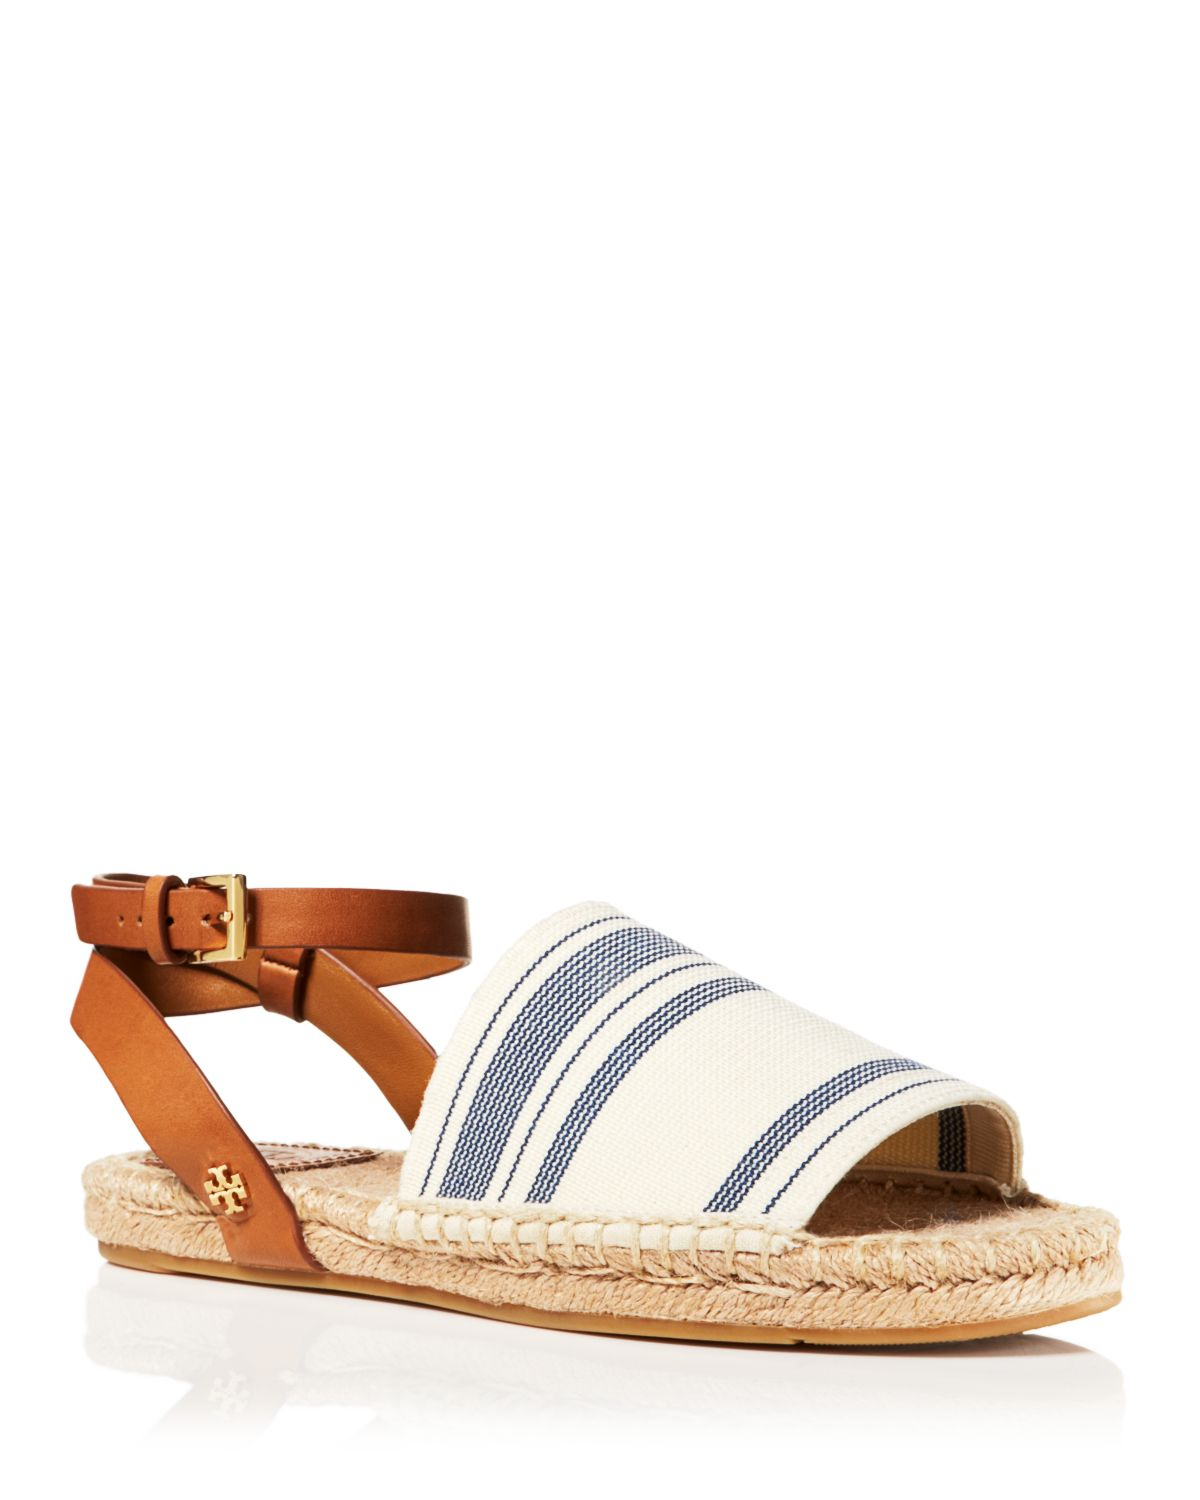 74f21c141 Lyst - Tory Burch Espadrille Flat Sandals - Striped Ankle Strap in White